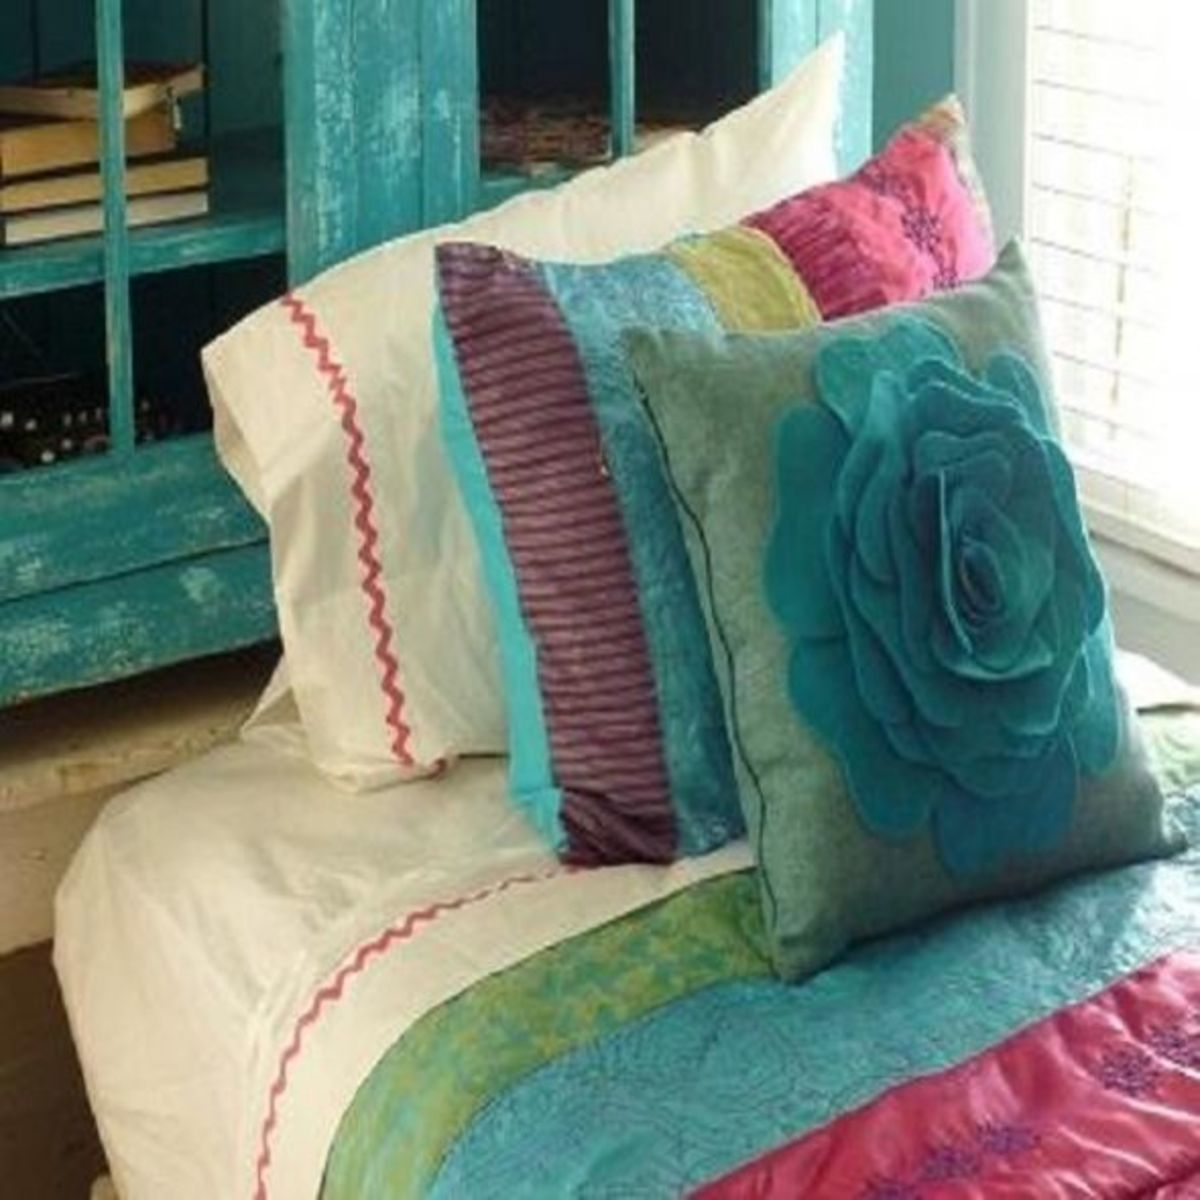 Stitch a single row of rick rack trim onto plain sheets and pillowcase to take them to the next level!